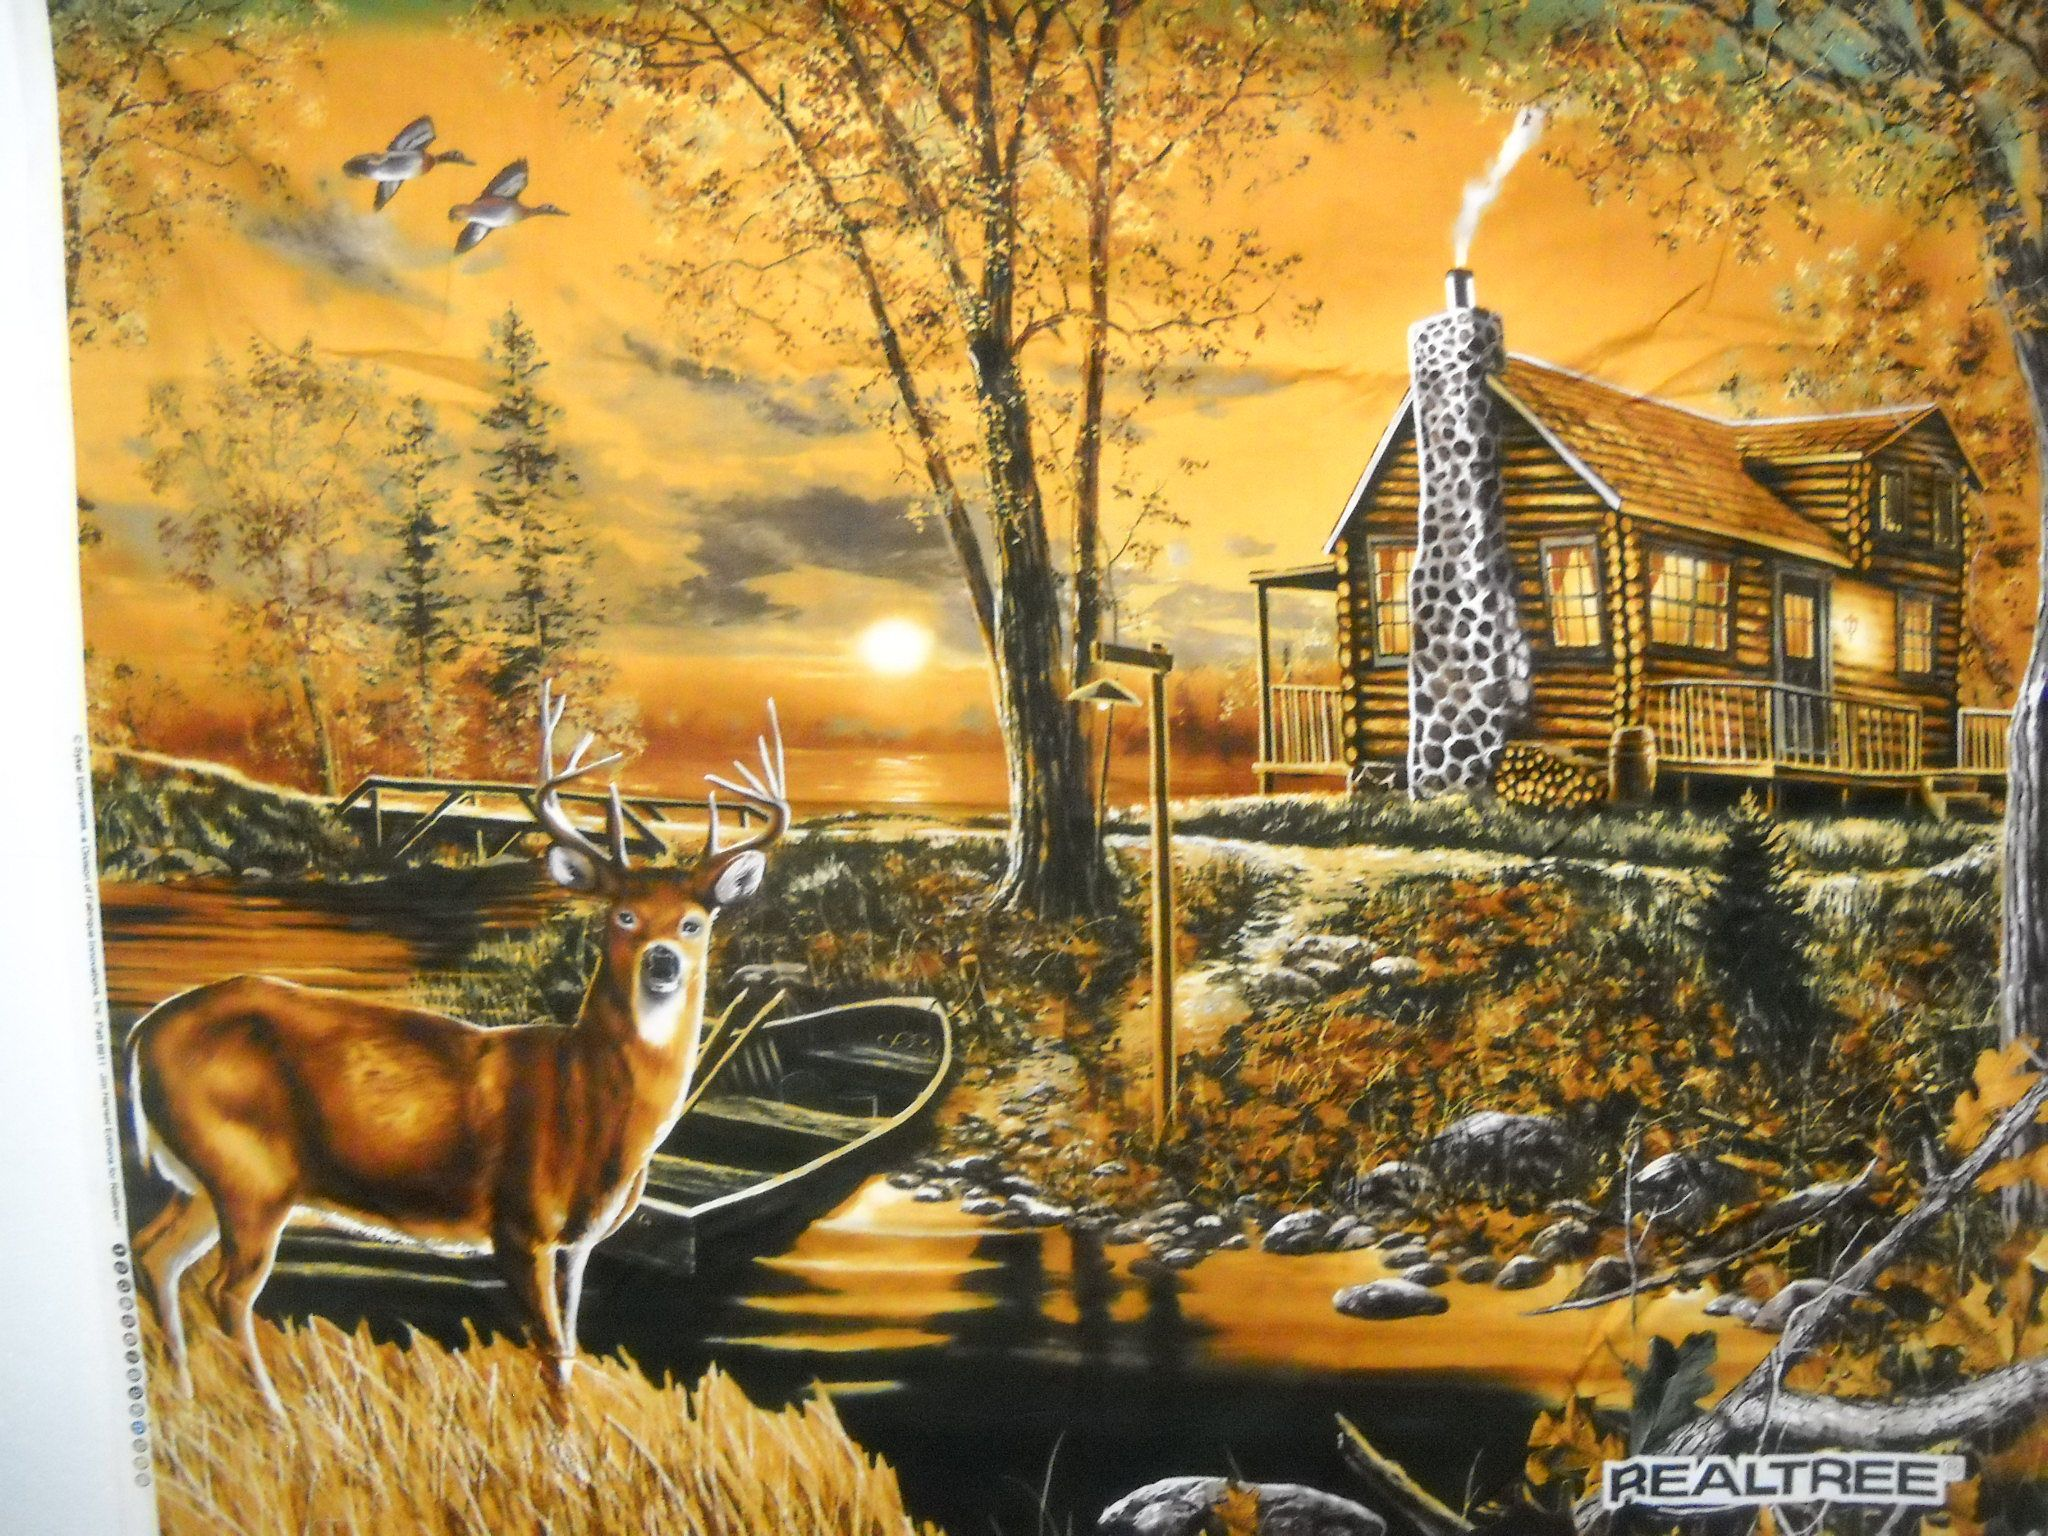 REALTREE Deer And Cabin In The Woods Scenic Fabric Panel Wall ...